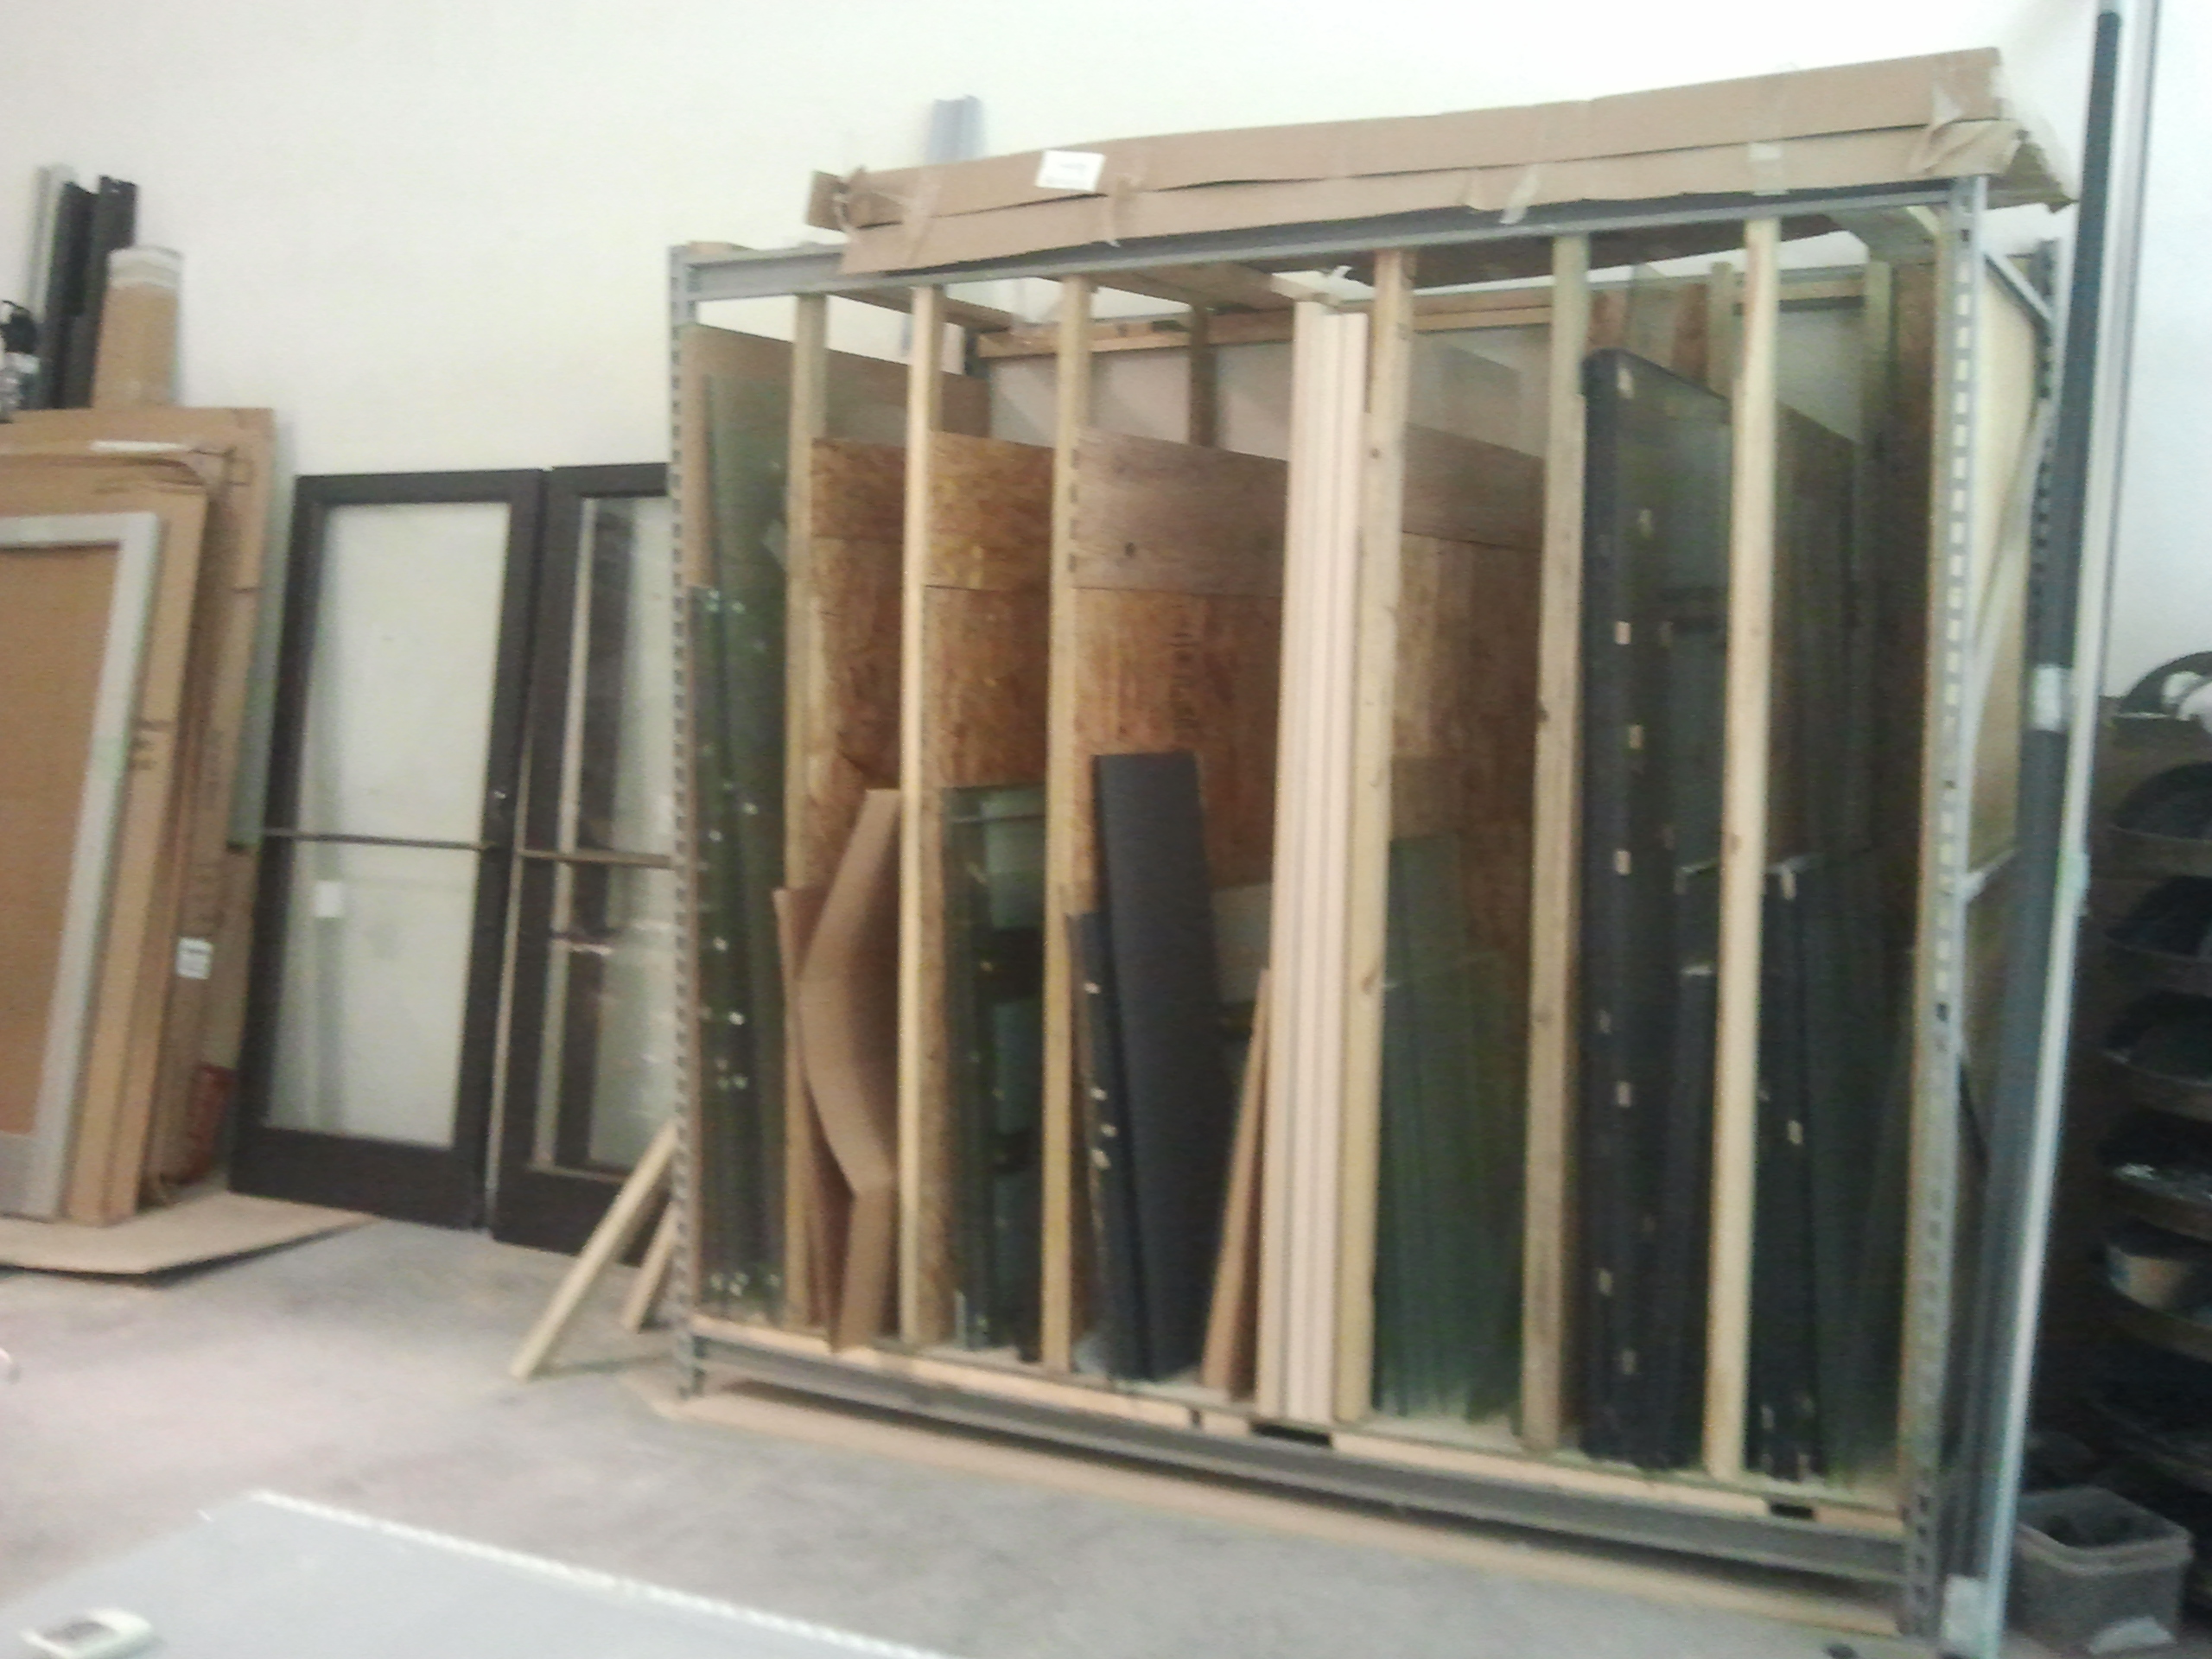 1920 #614A38 Commercial Door And Window Glass In Stock At Our Chesapeake Location  wallpaper Commercial Doors And Windows 45352560